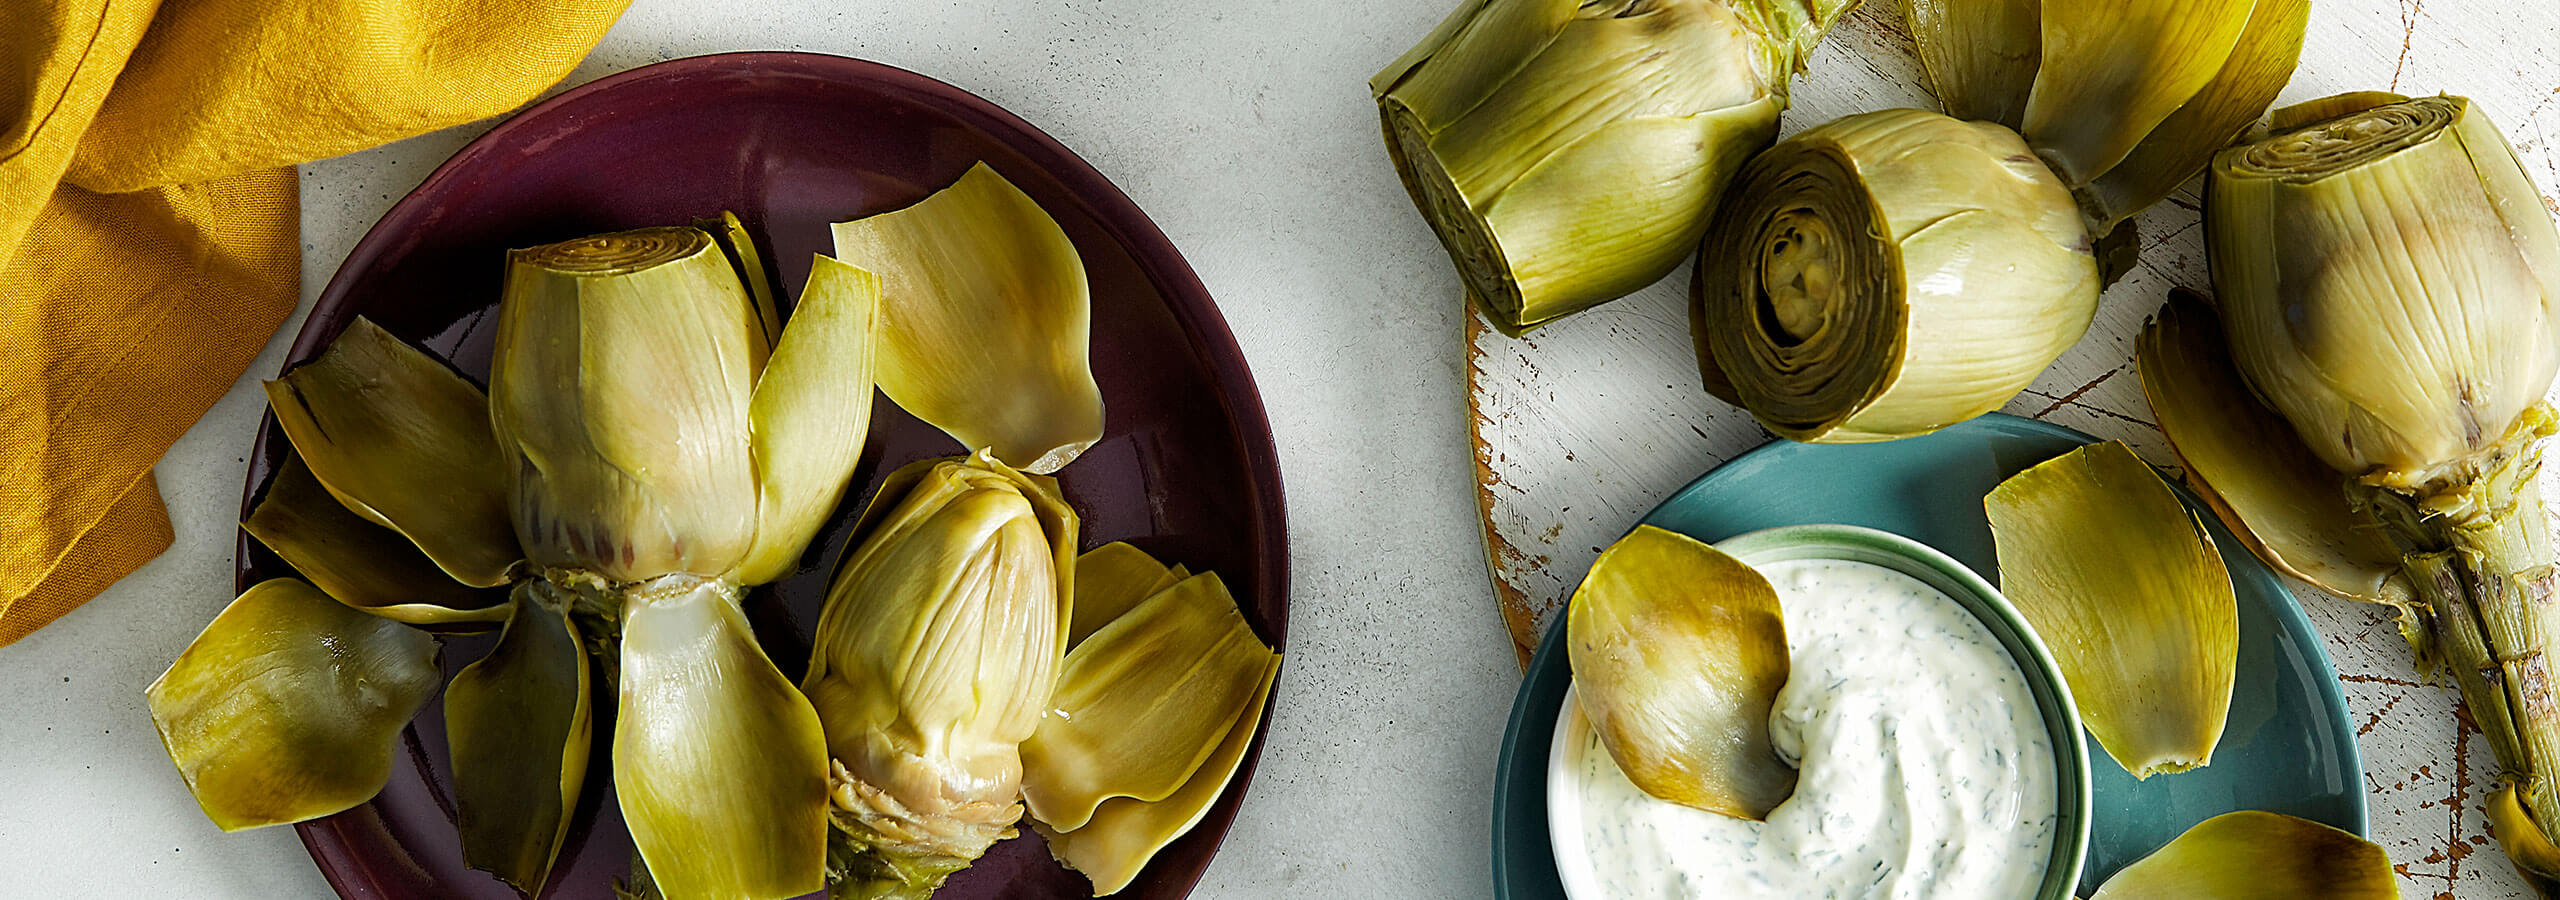 Artichokes with Yoghurt Dipping Sauce